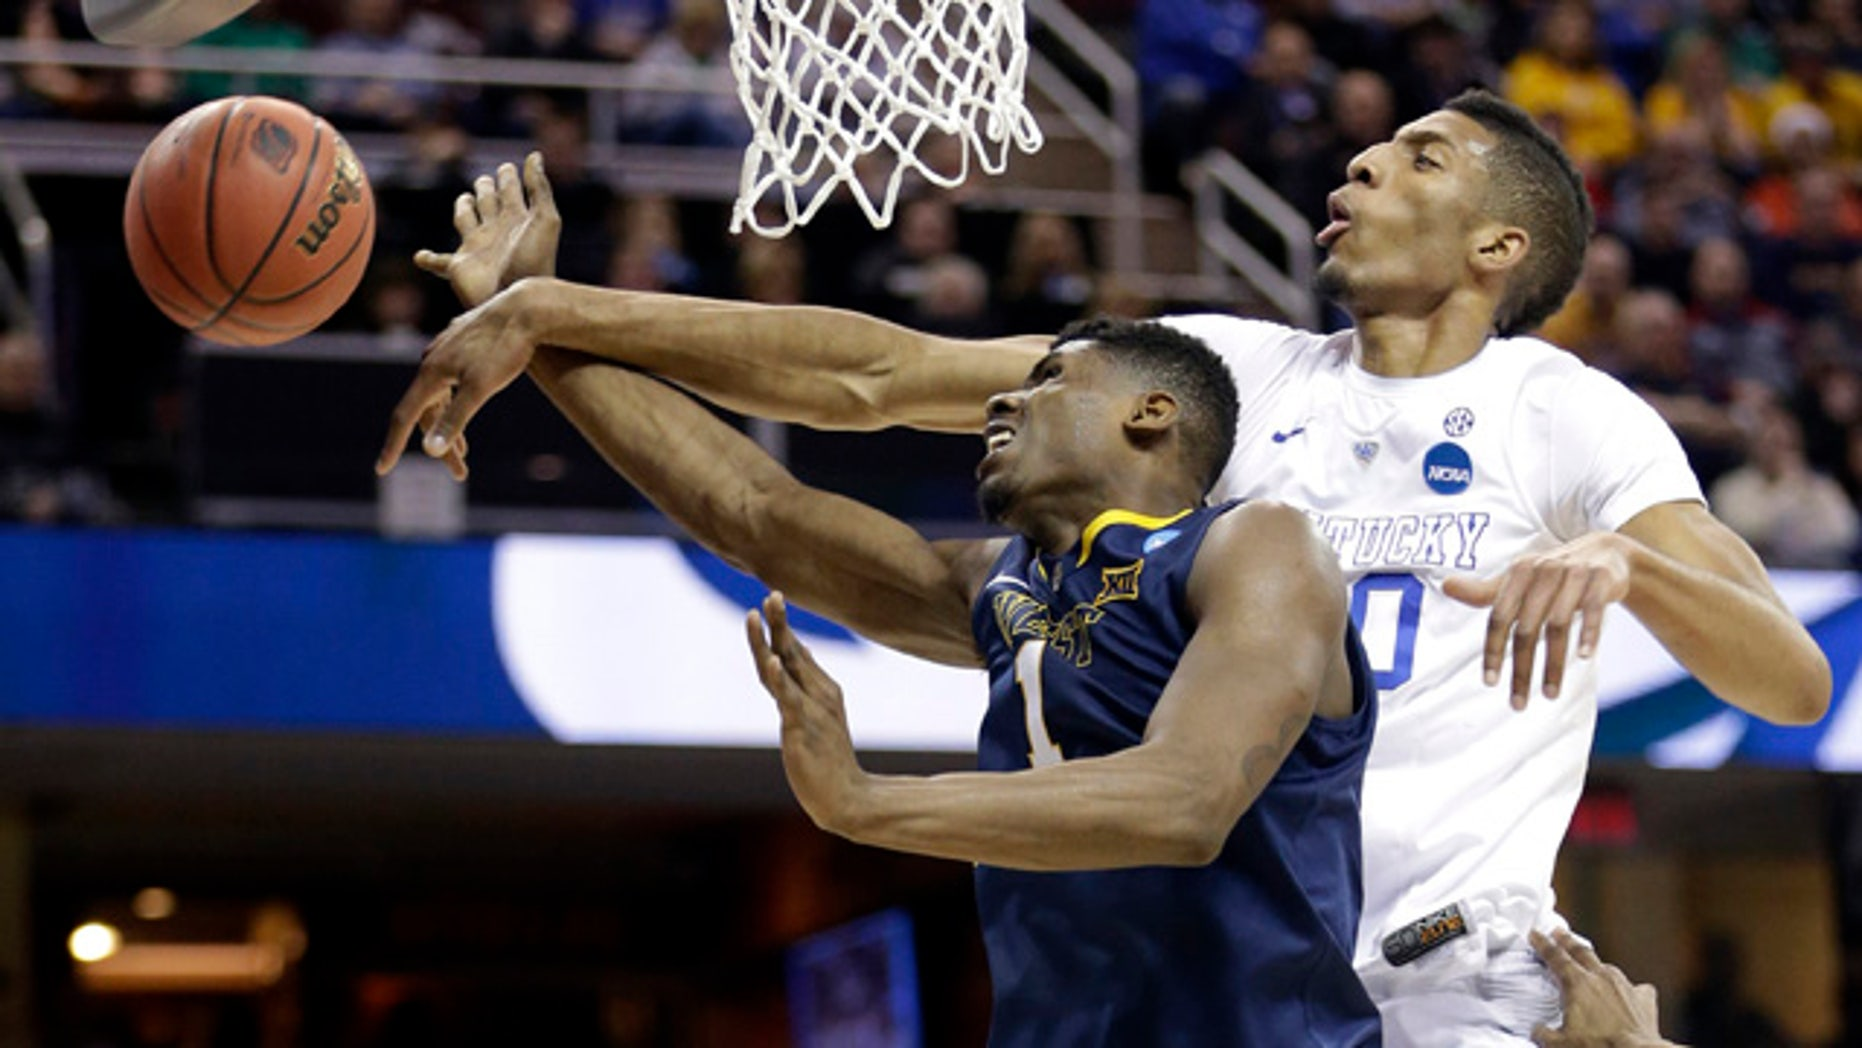 March 26, 2015: Kentucky's Marcus Lee, right, blocks a shot by West Virginia's Jonathan Holton during the first half of a college basketball game in the NCAA men's tournament regional semifinals in Cleveland. (AP Photo/Tony Dejak)